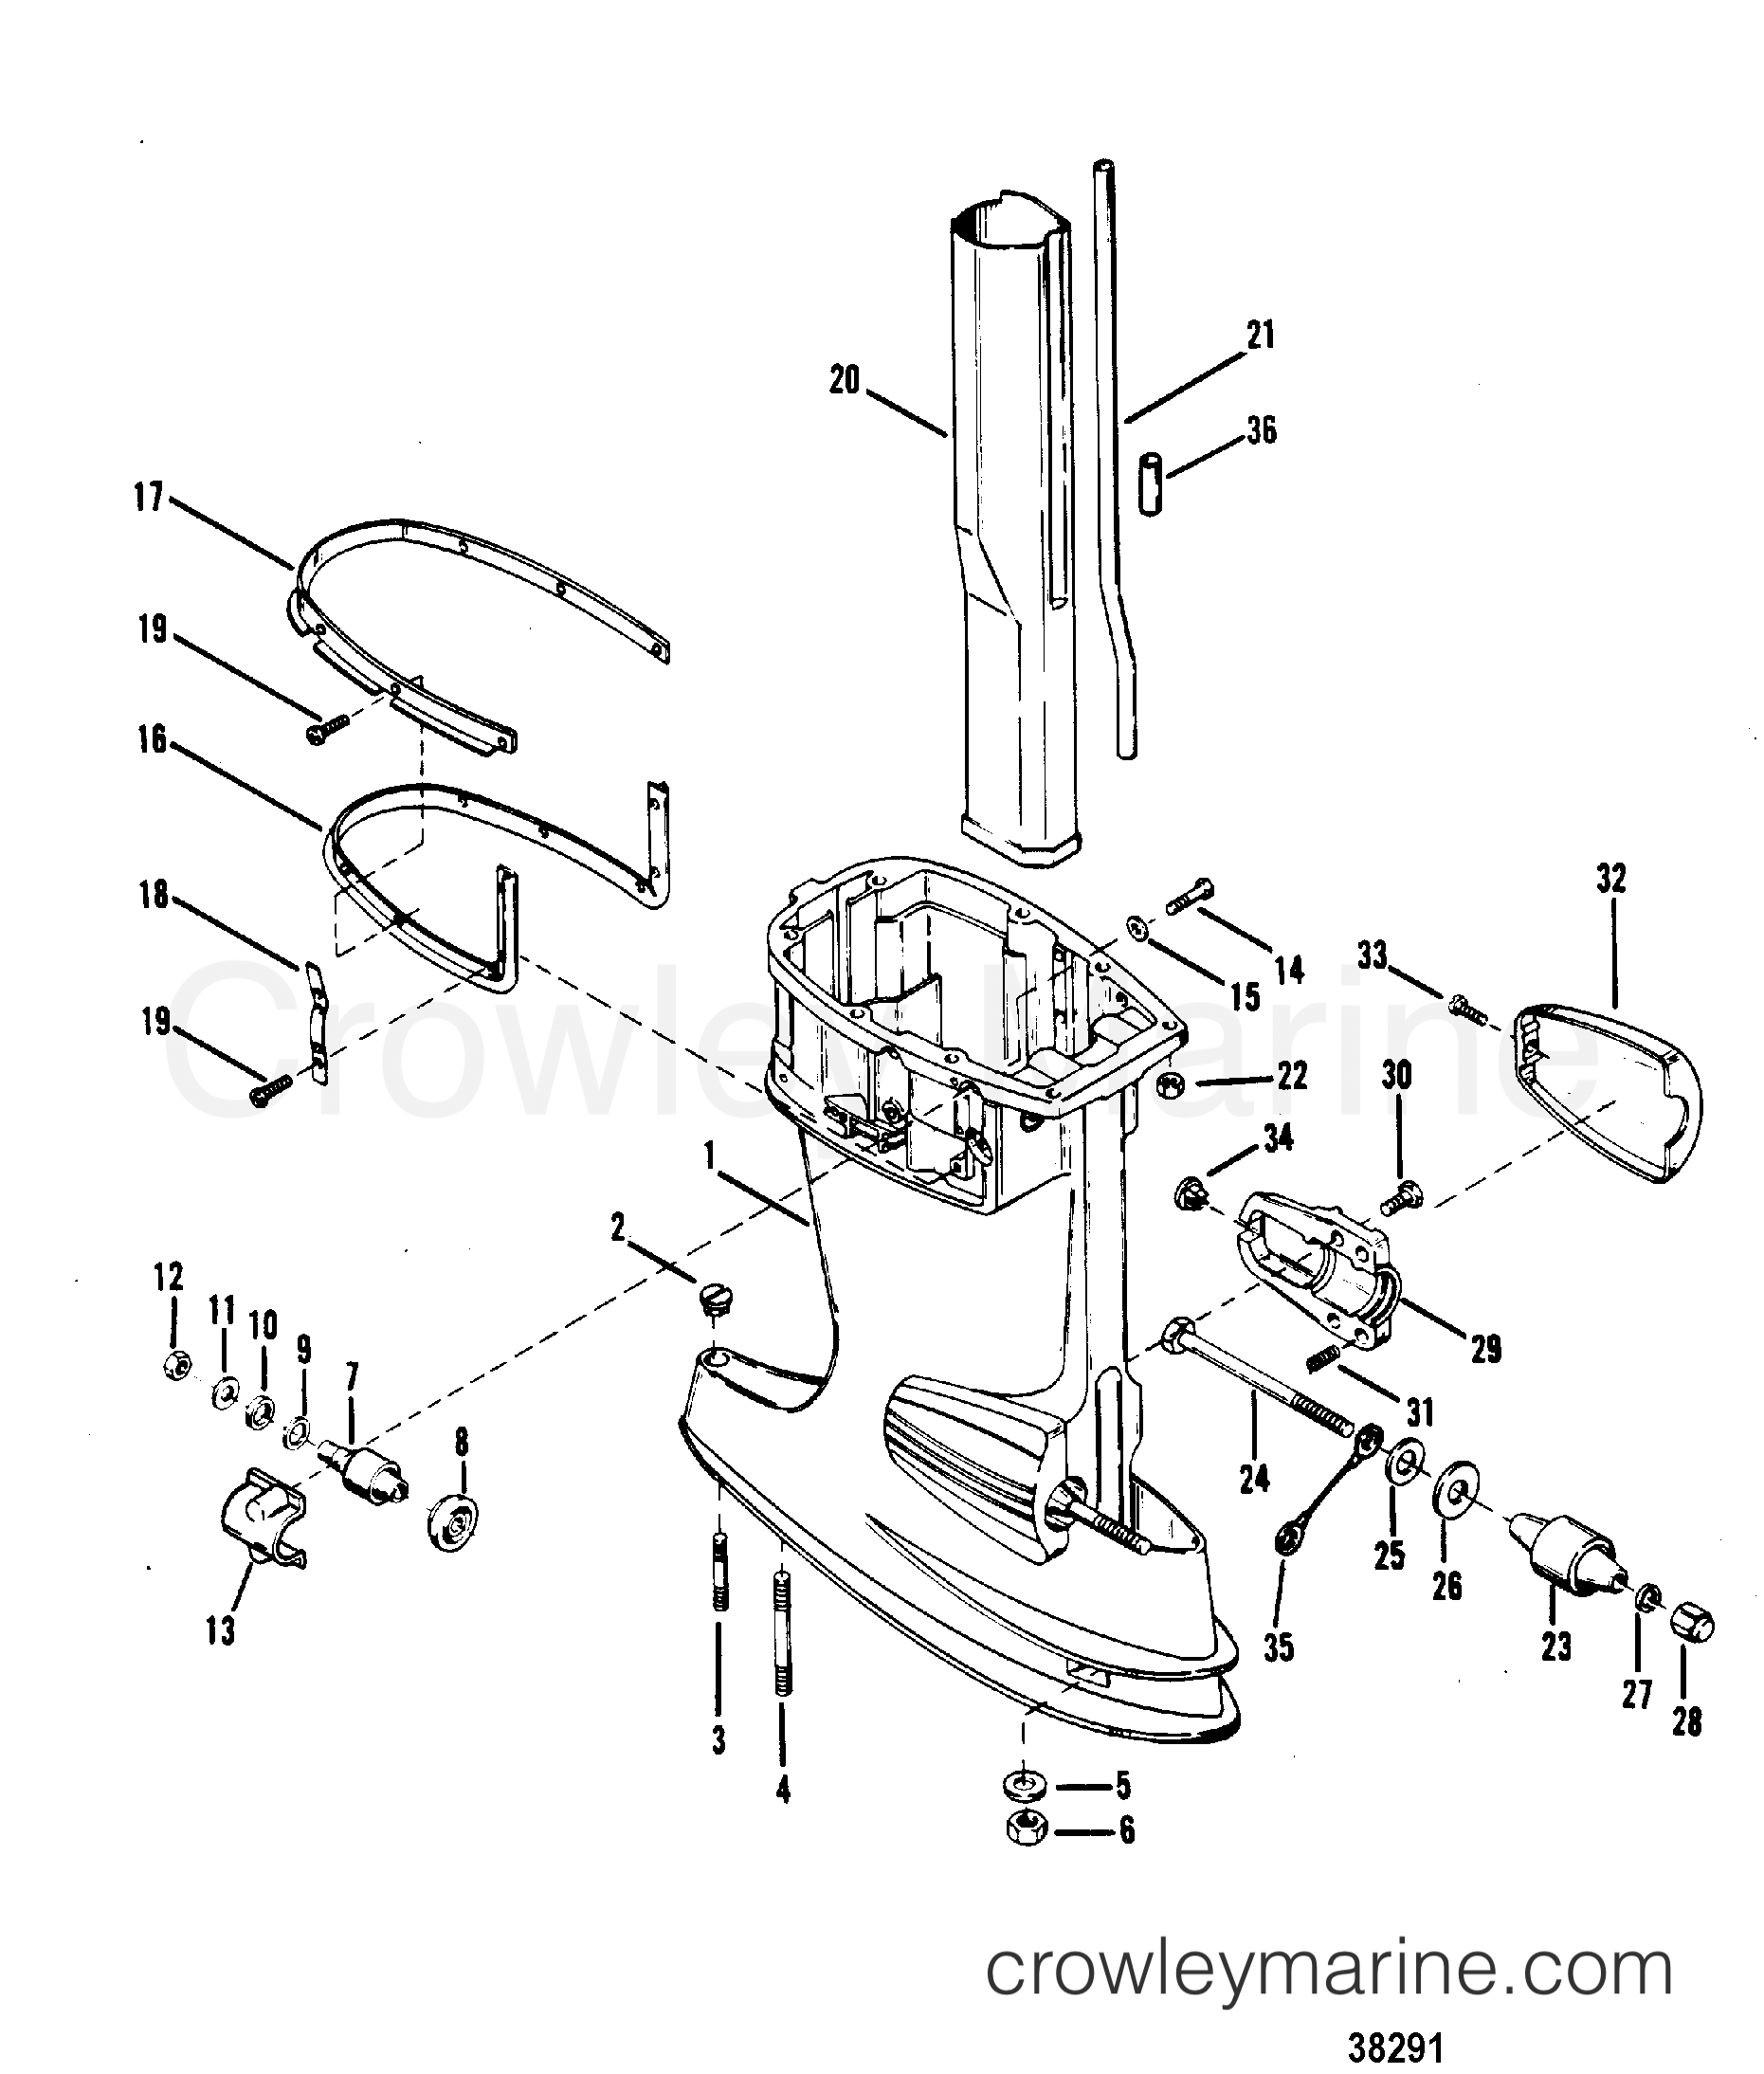 1980 Mercury Outboard 70 [ELPT] -  1070620 - DRIVESHAFT HOUSING ASSEMBLY section